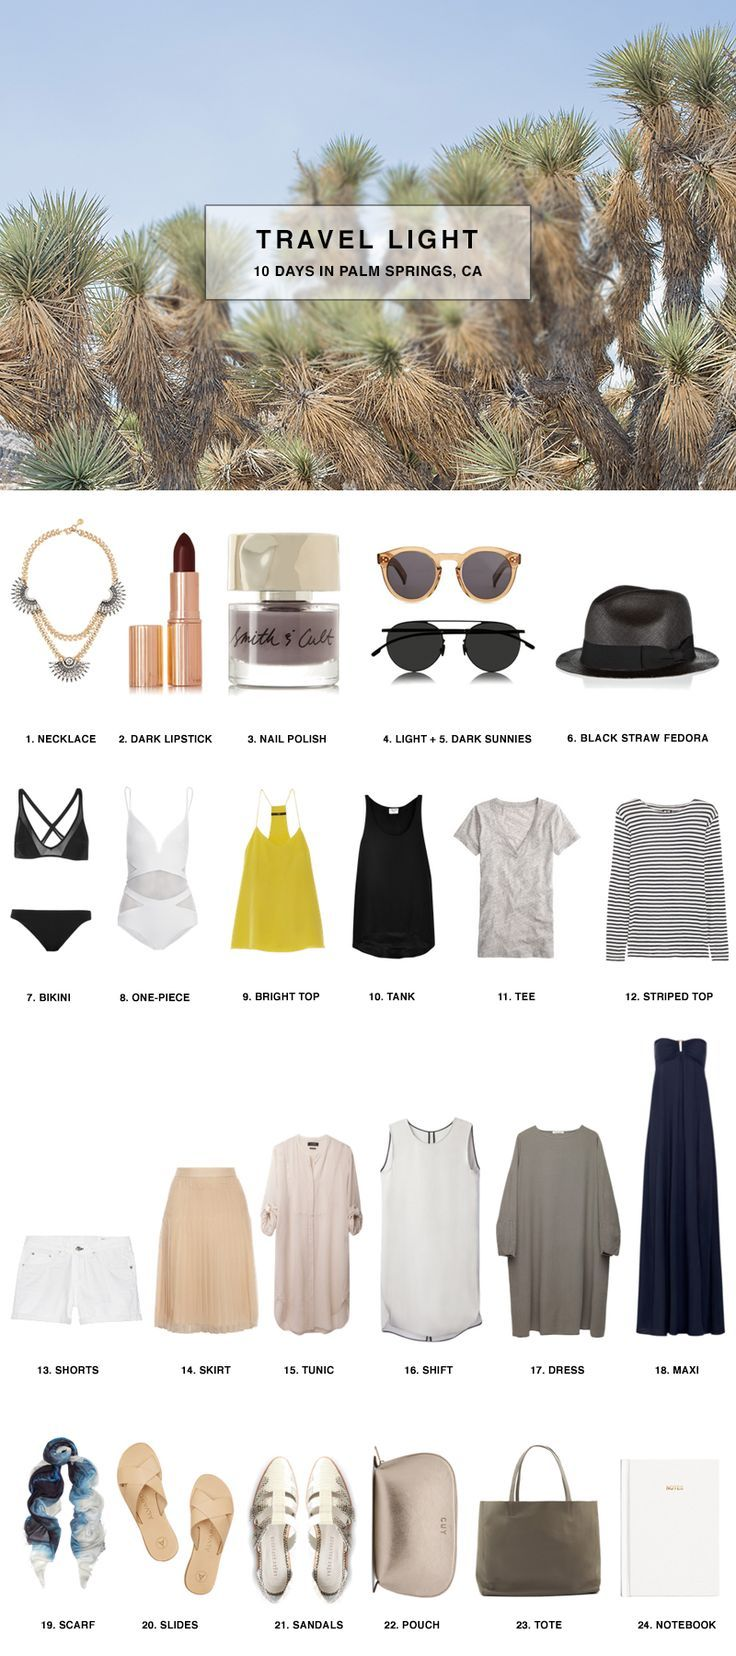 Pack in a carry-on for 10 Days in Palm Springs, California